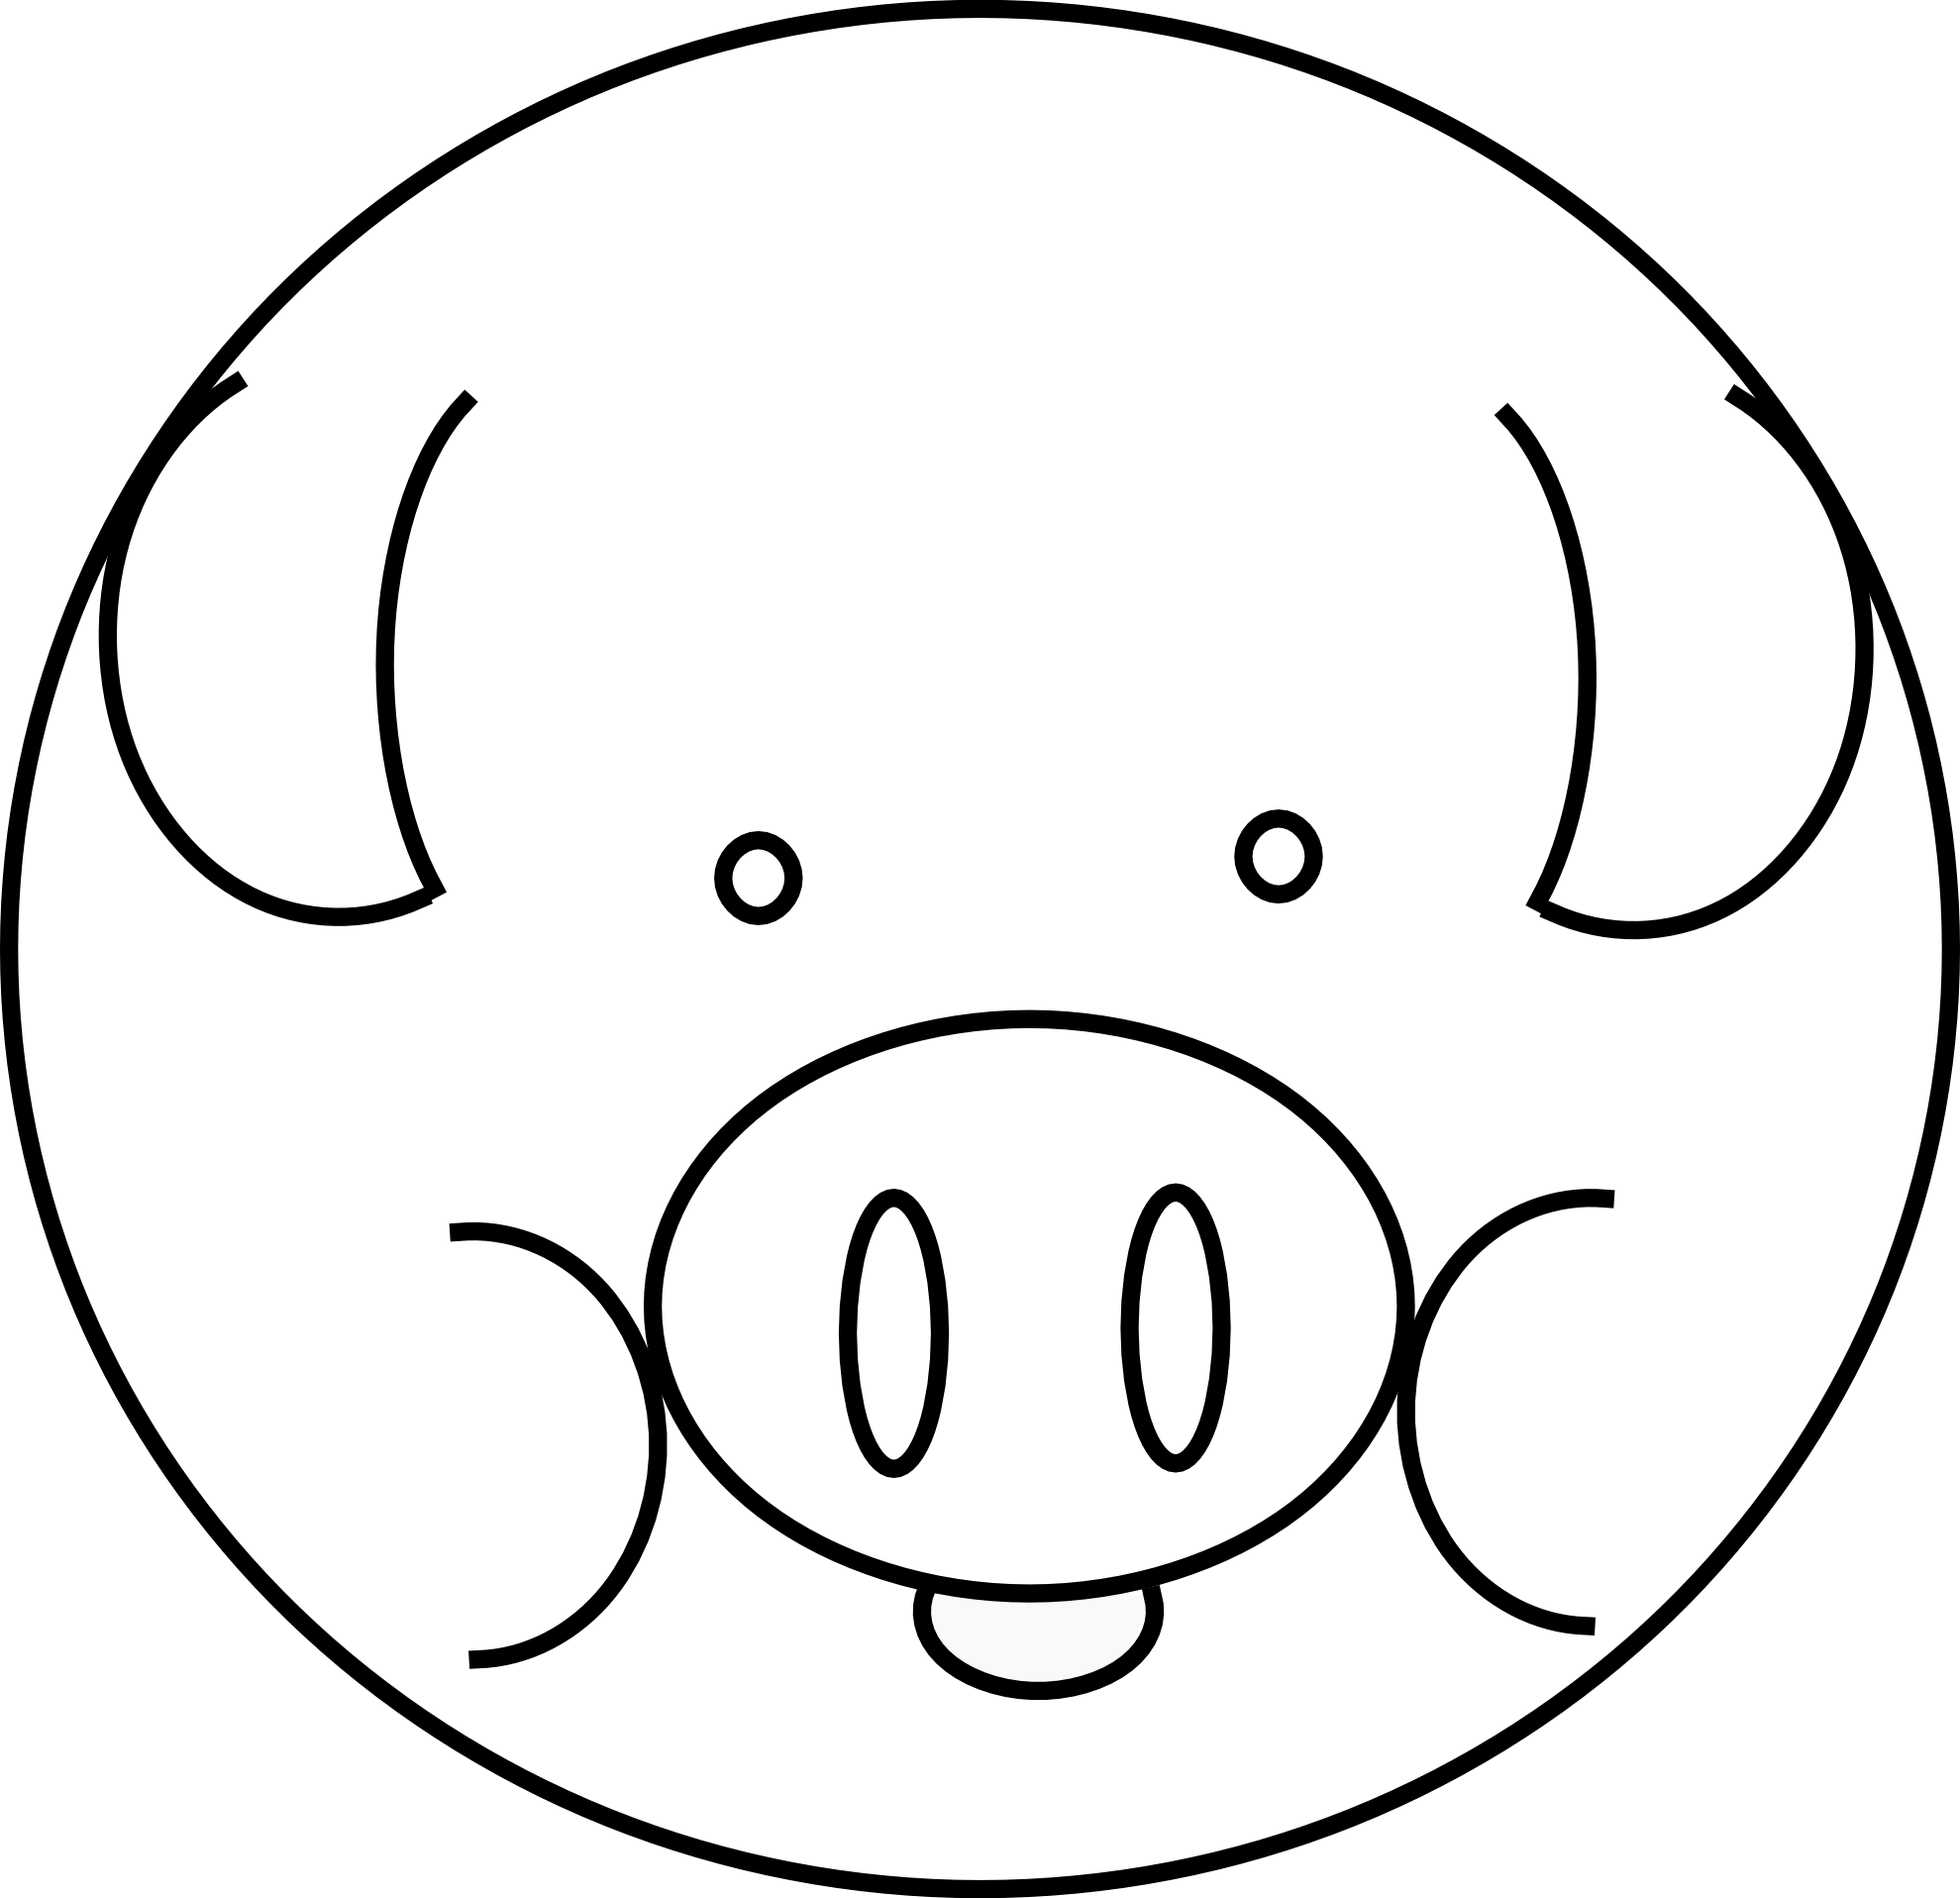 Black And White Coloring Book Pig Page Quick Start Guide Of Wiring Schlage Nd80pdeu Diagram Line Art Cliparts Co Hamster Pages Cow